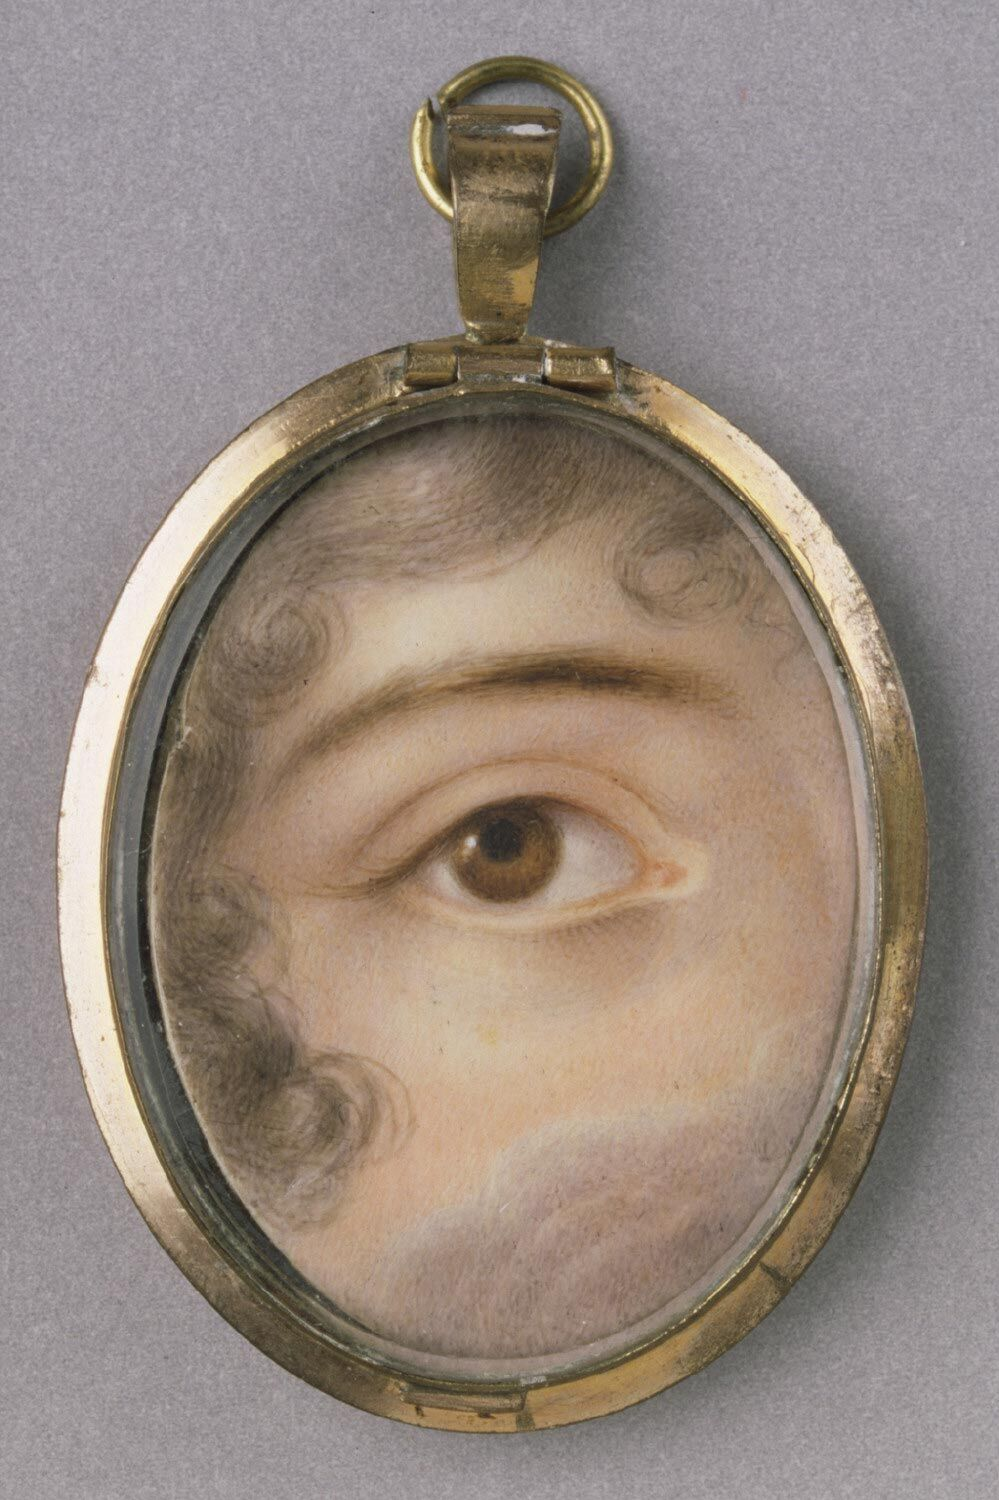 Portrait of a Woman's Right Eye. Courtesy of the Philadelphia Museum of Art.